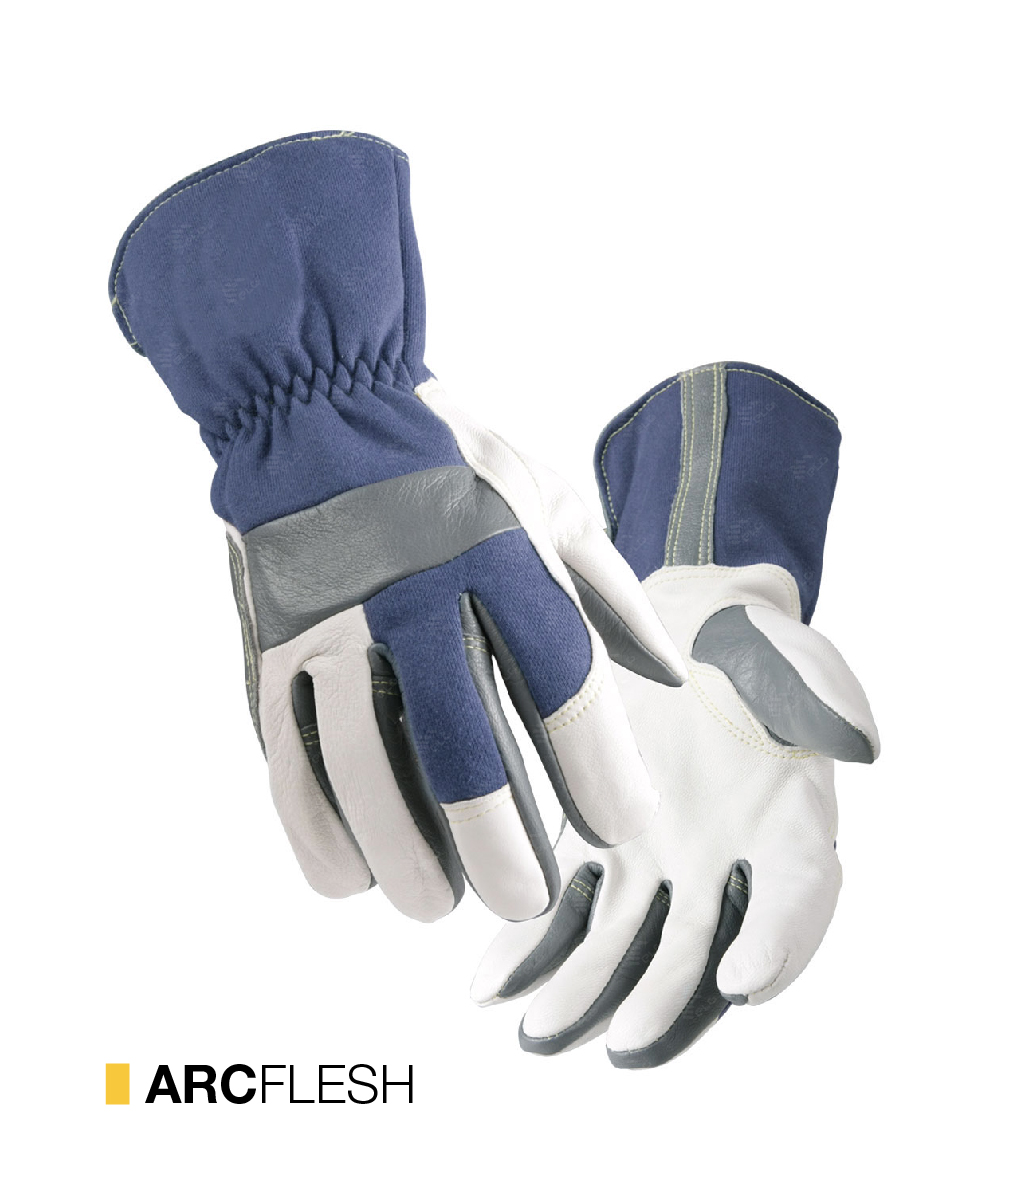 ARCFLESH cut-resistant gloves by elite leather